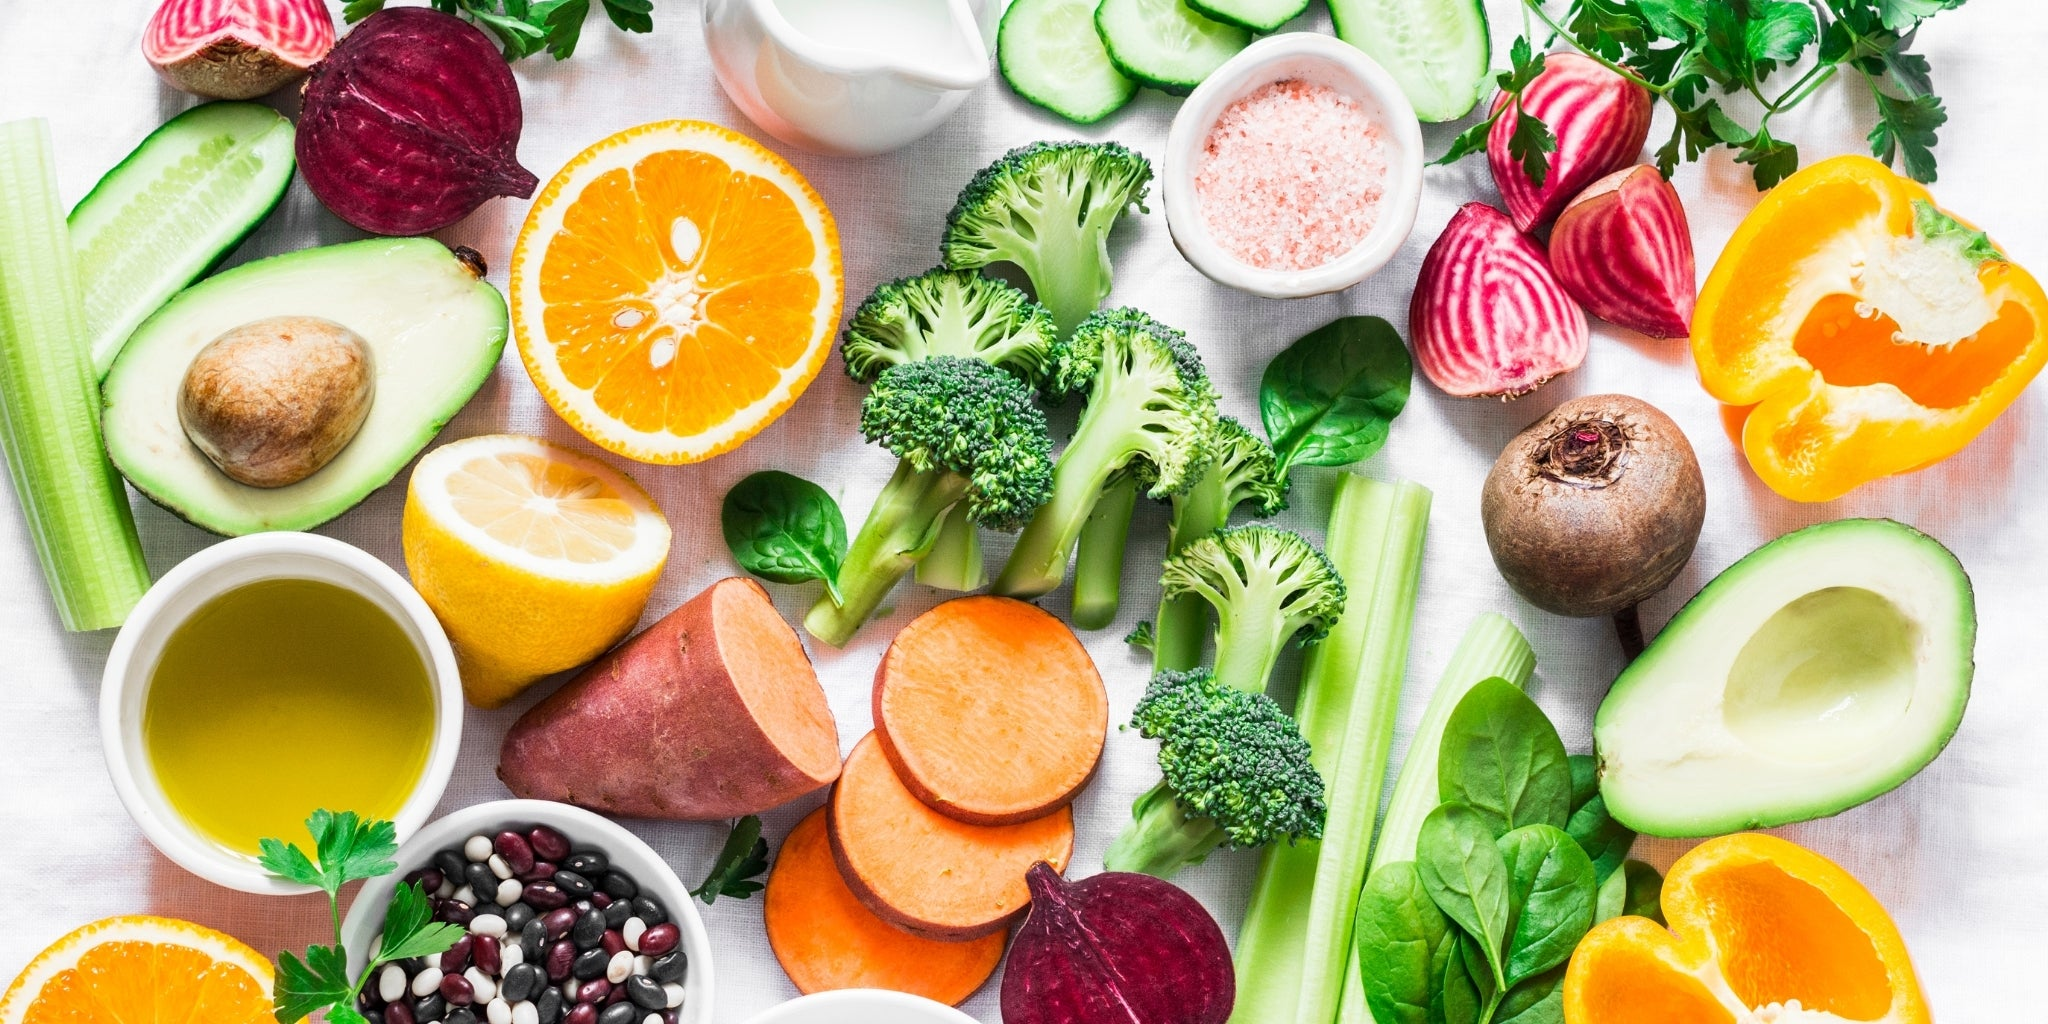 6 Viridian Vitamins to Improve Your Health and Wellness